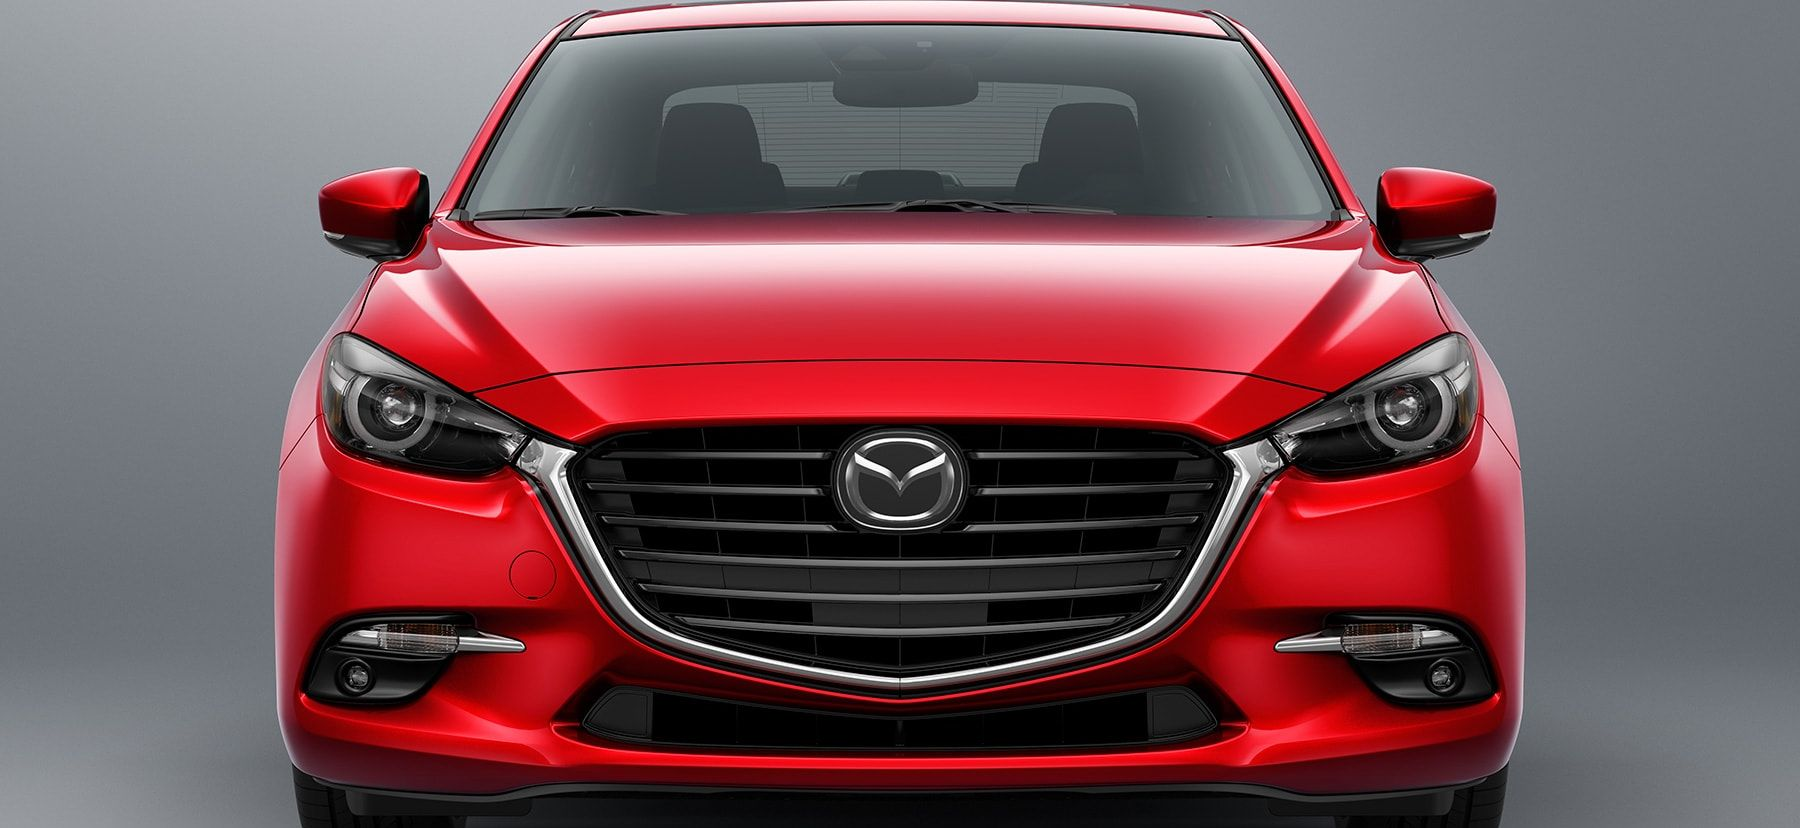 League City Mazda Dealer >> 2017 Mazda3 Sport Lease Deals | Lamoureph Blog